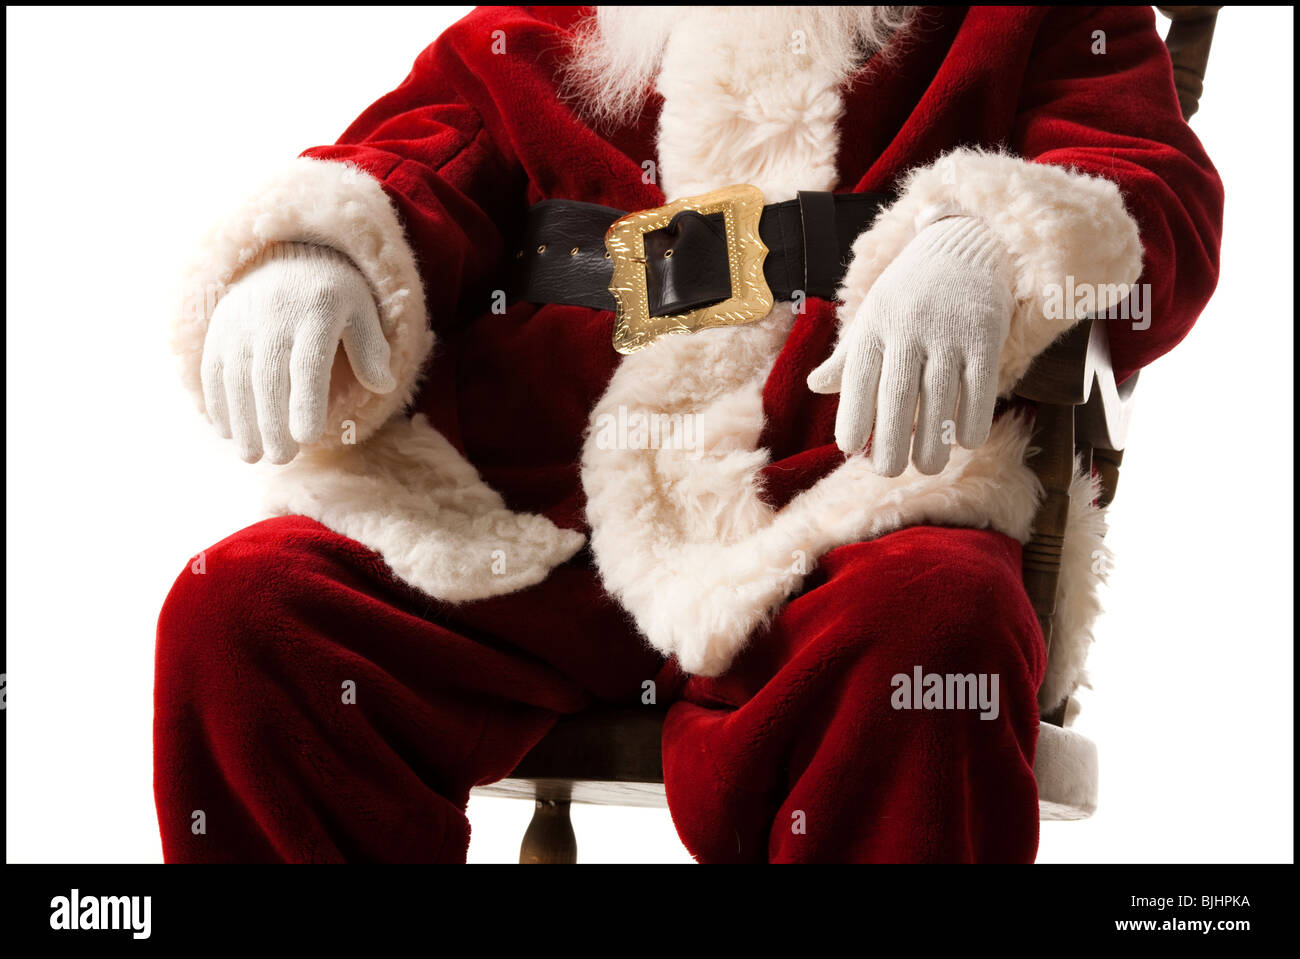 Santa claus Photo Stock